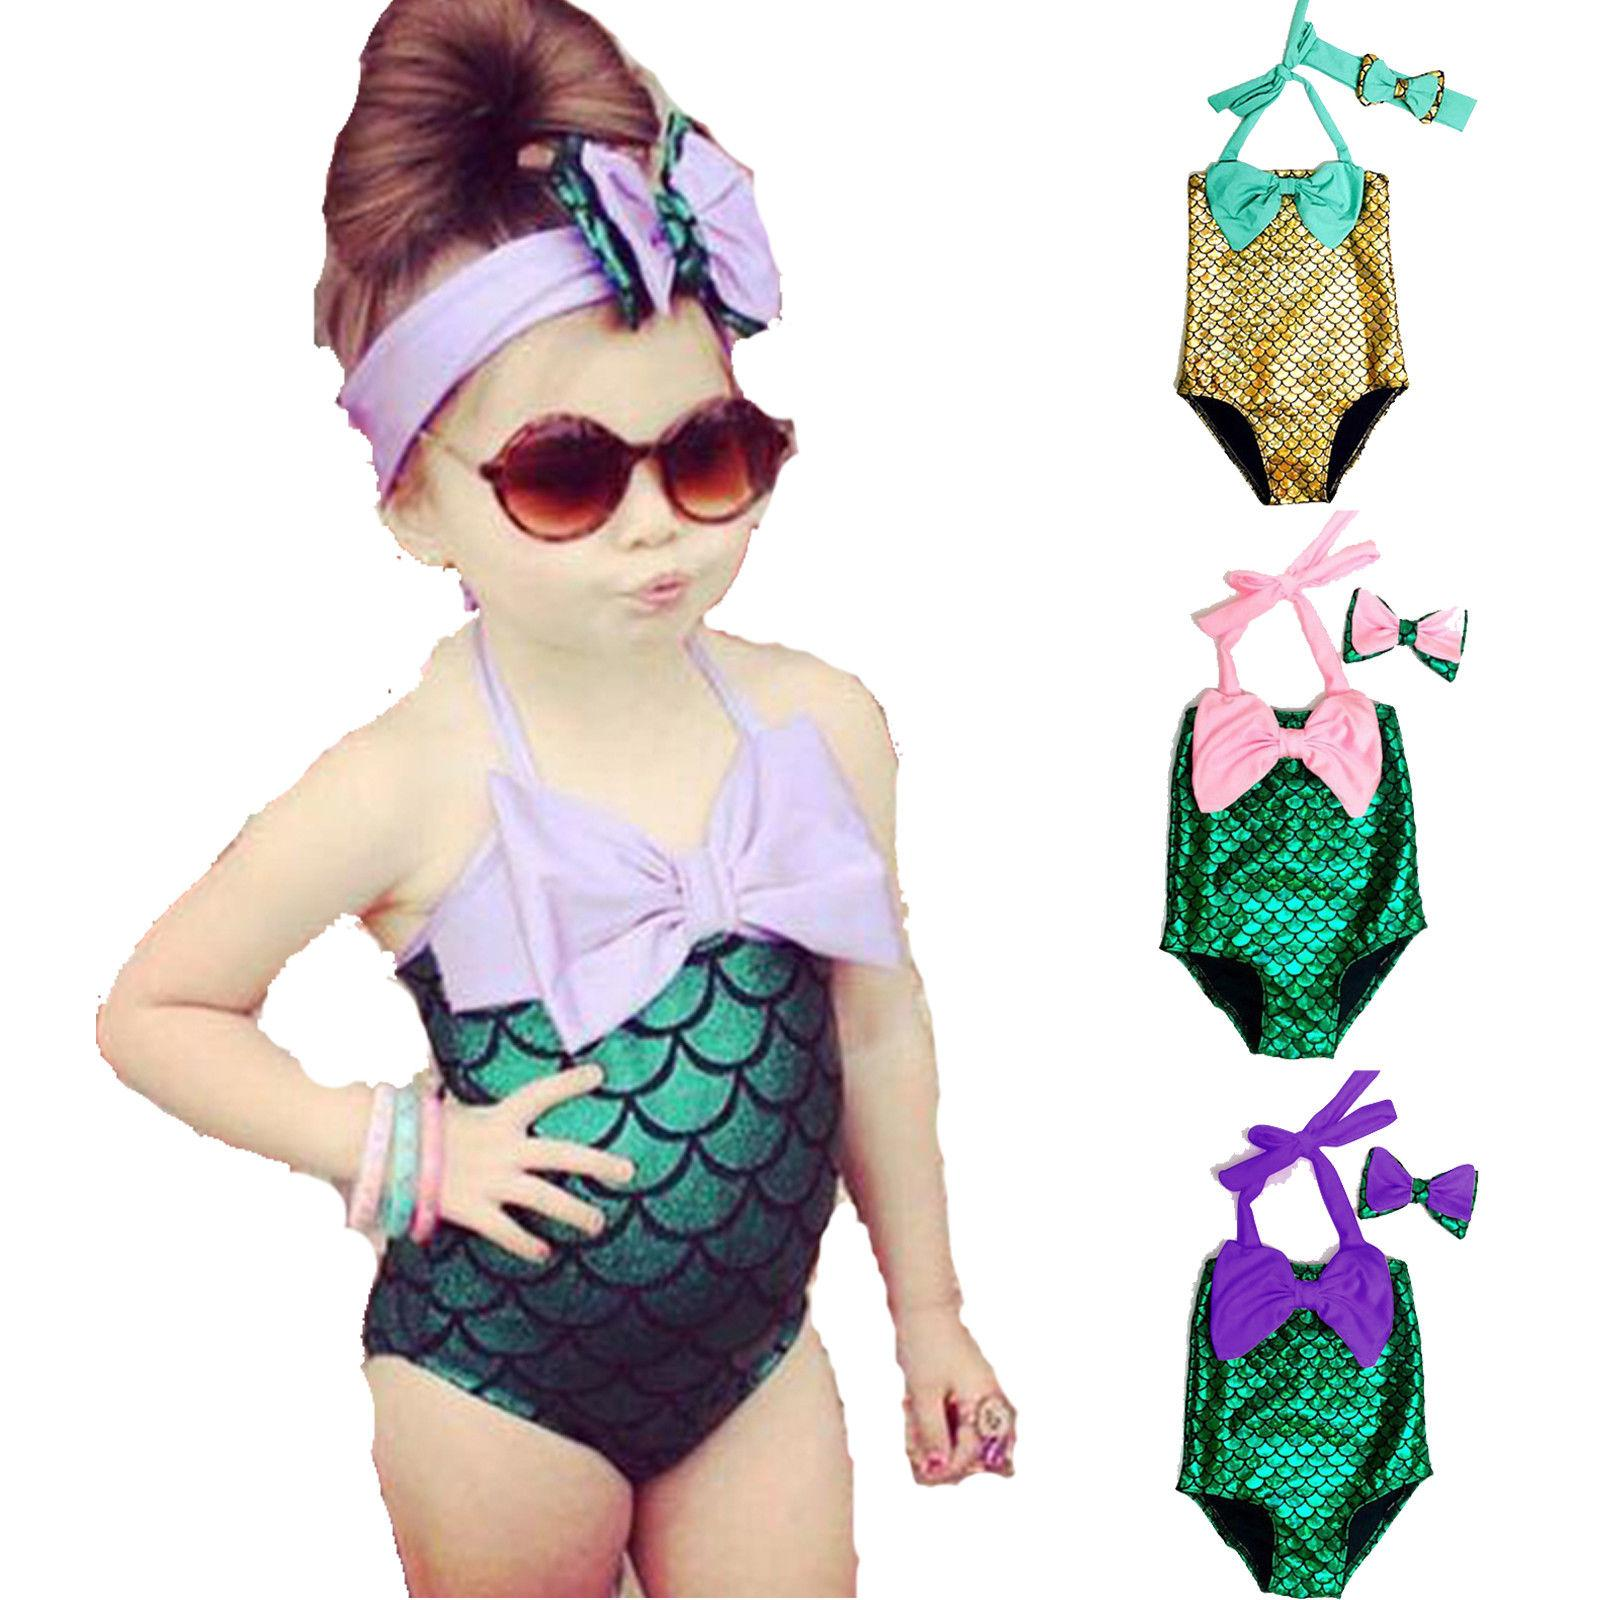 7e0f1105d1fd 2019 Baby Girls Mermaid Bikini Suit Swimming Princess Costume Swimsuit Kids  Toddler Girls Swimming Suits 3styles FFA071 From Top toy